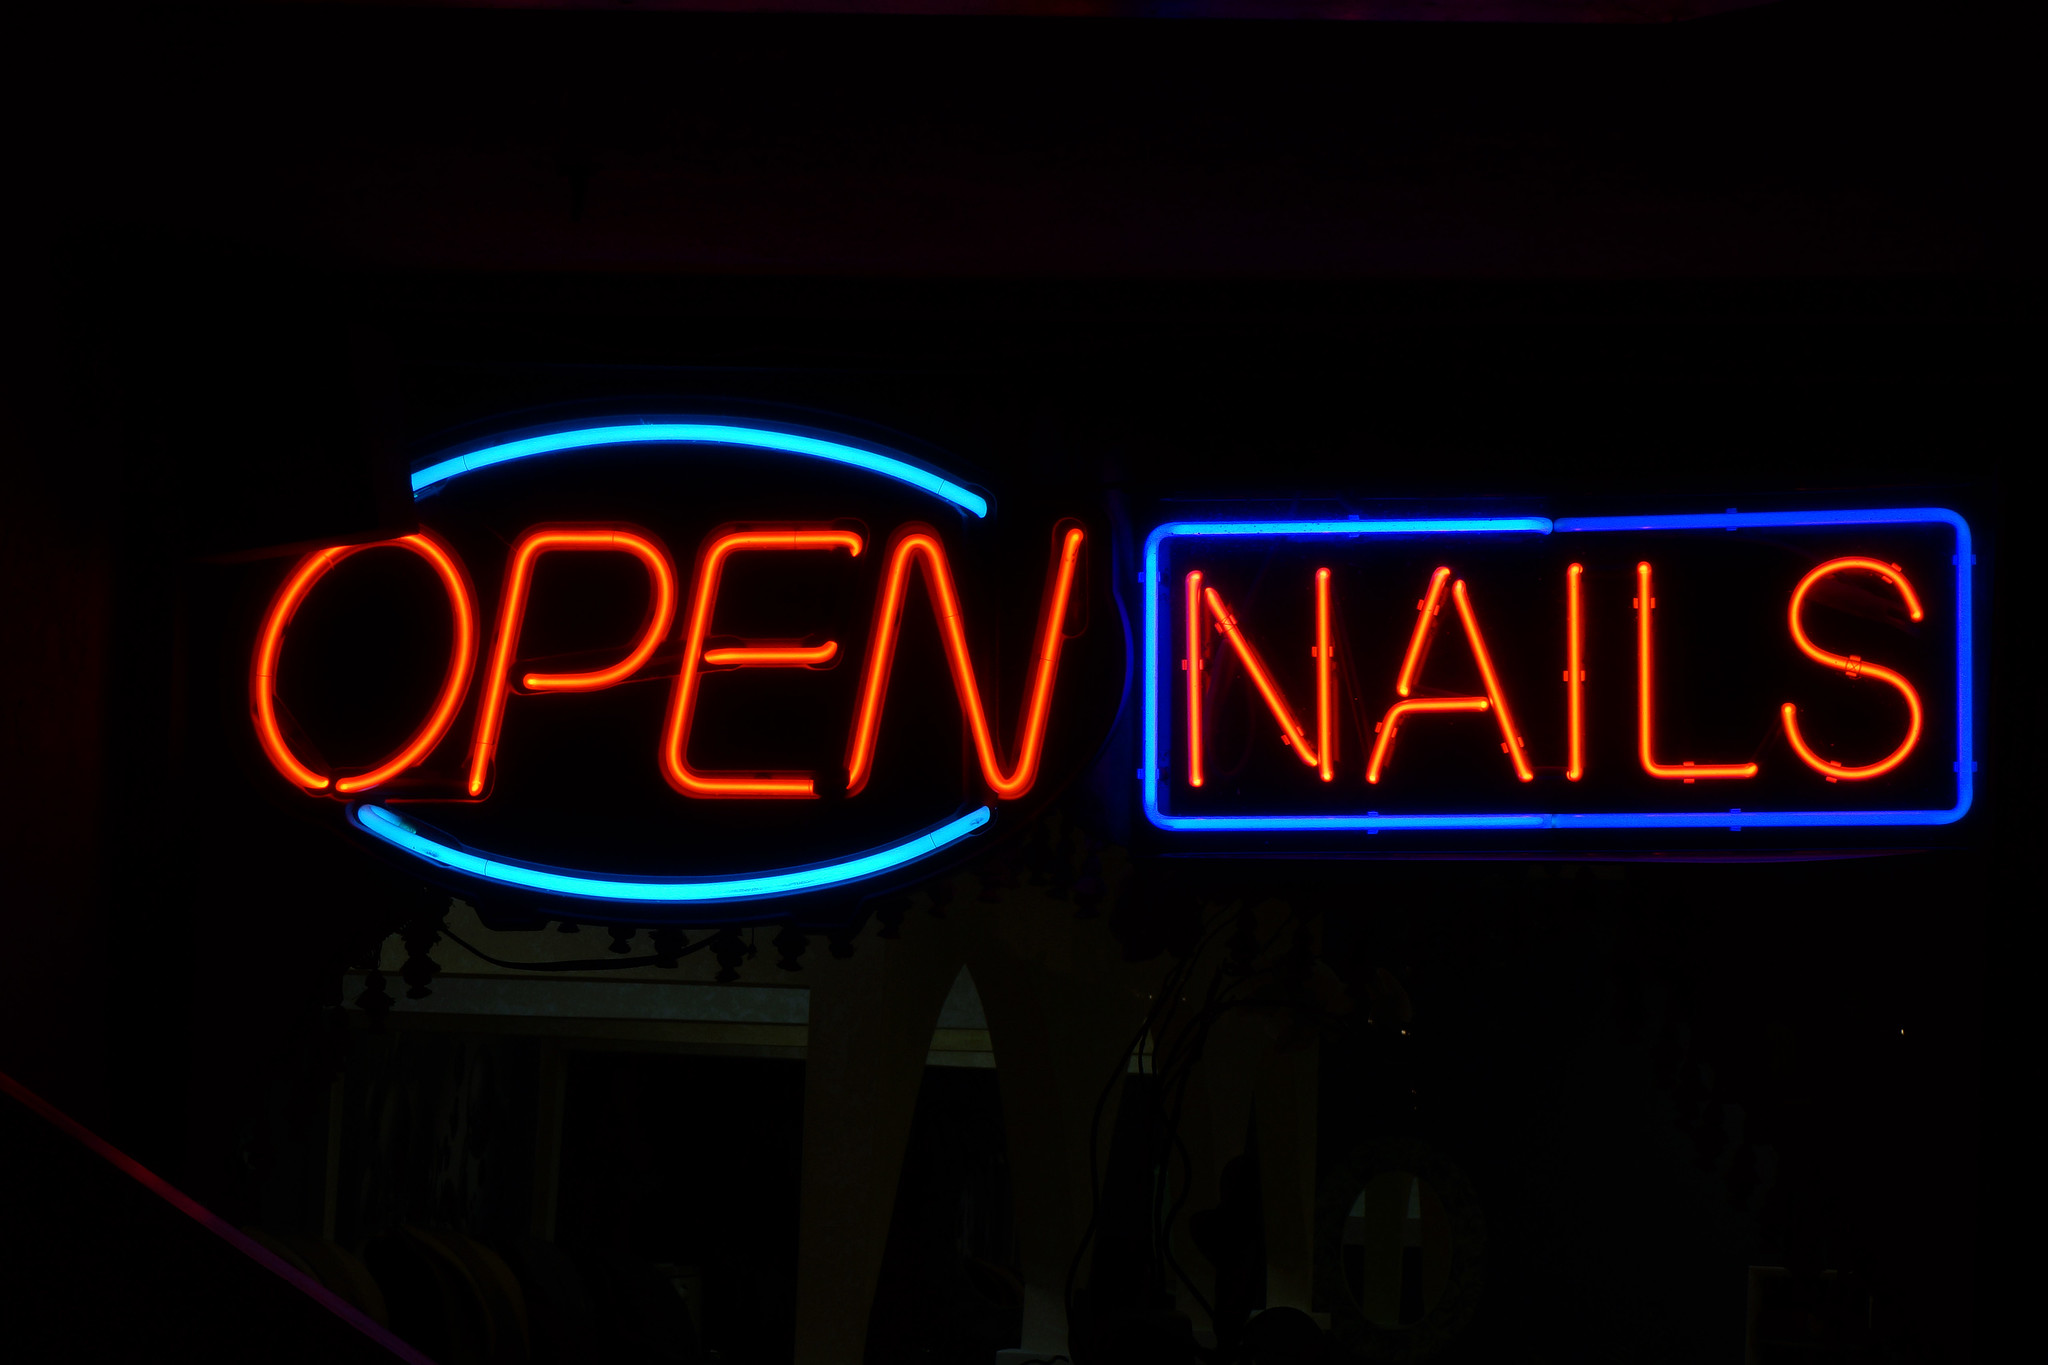 Open Nails